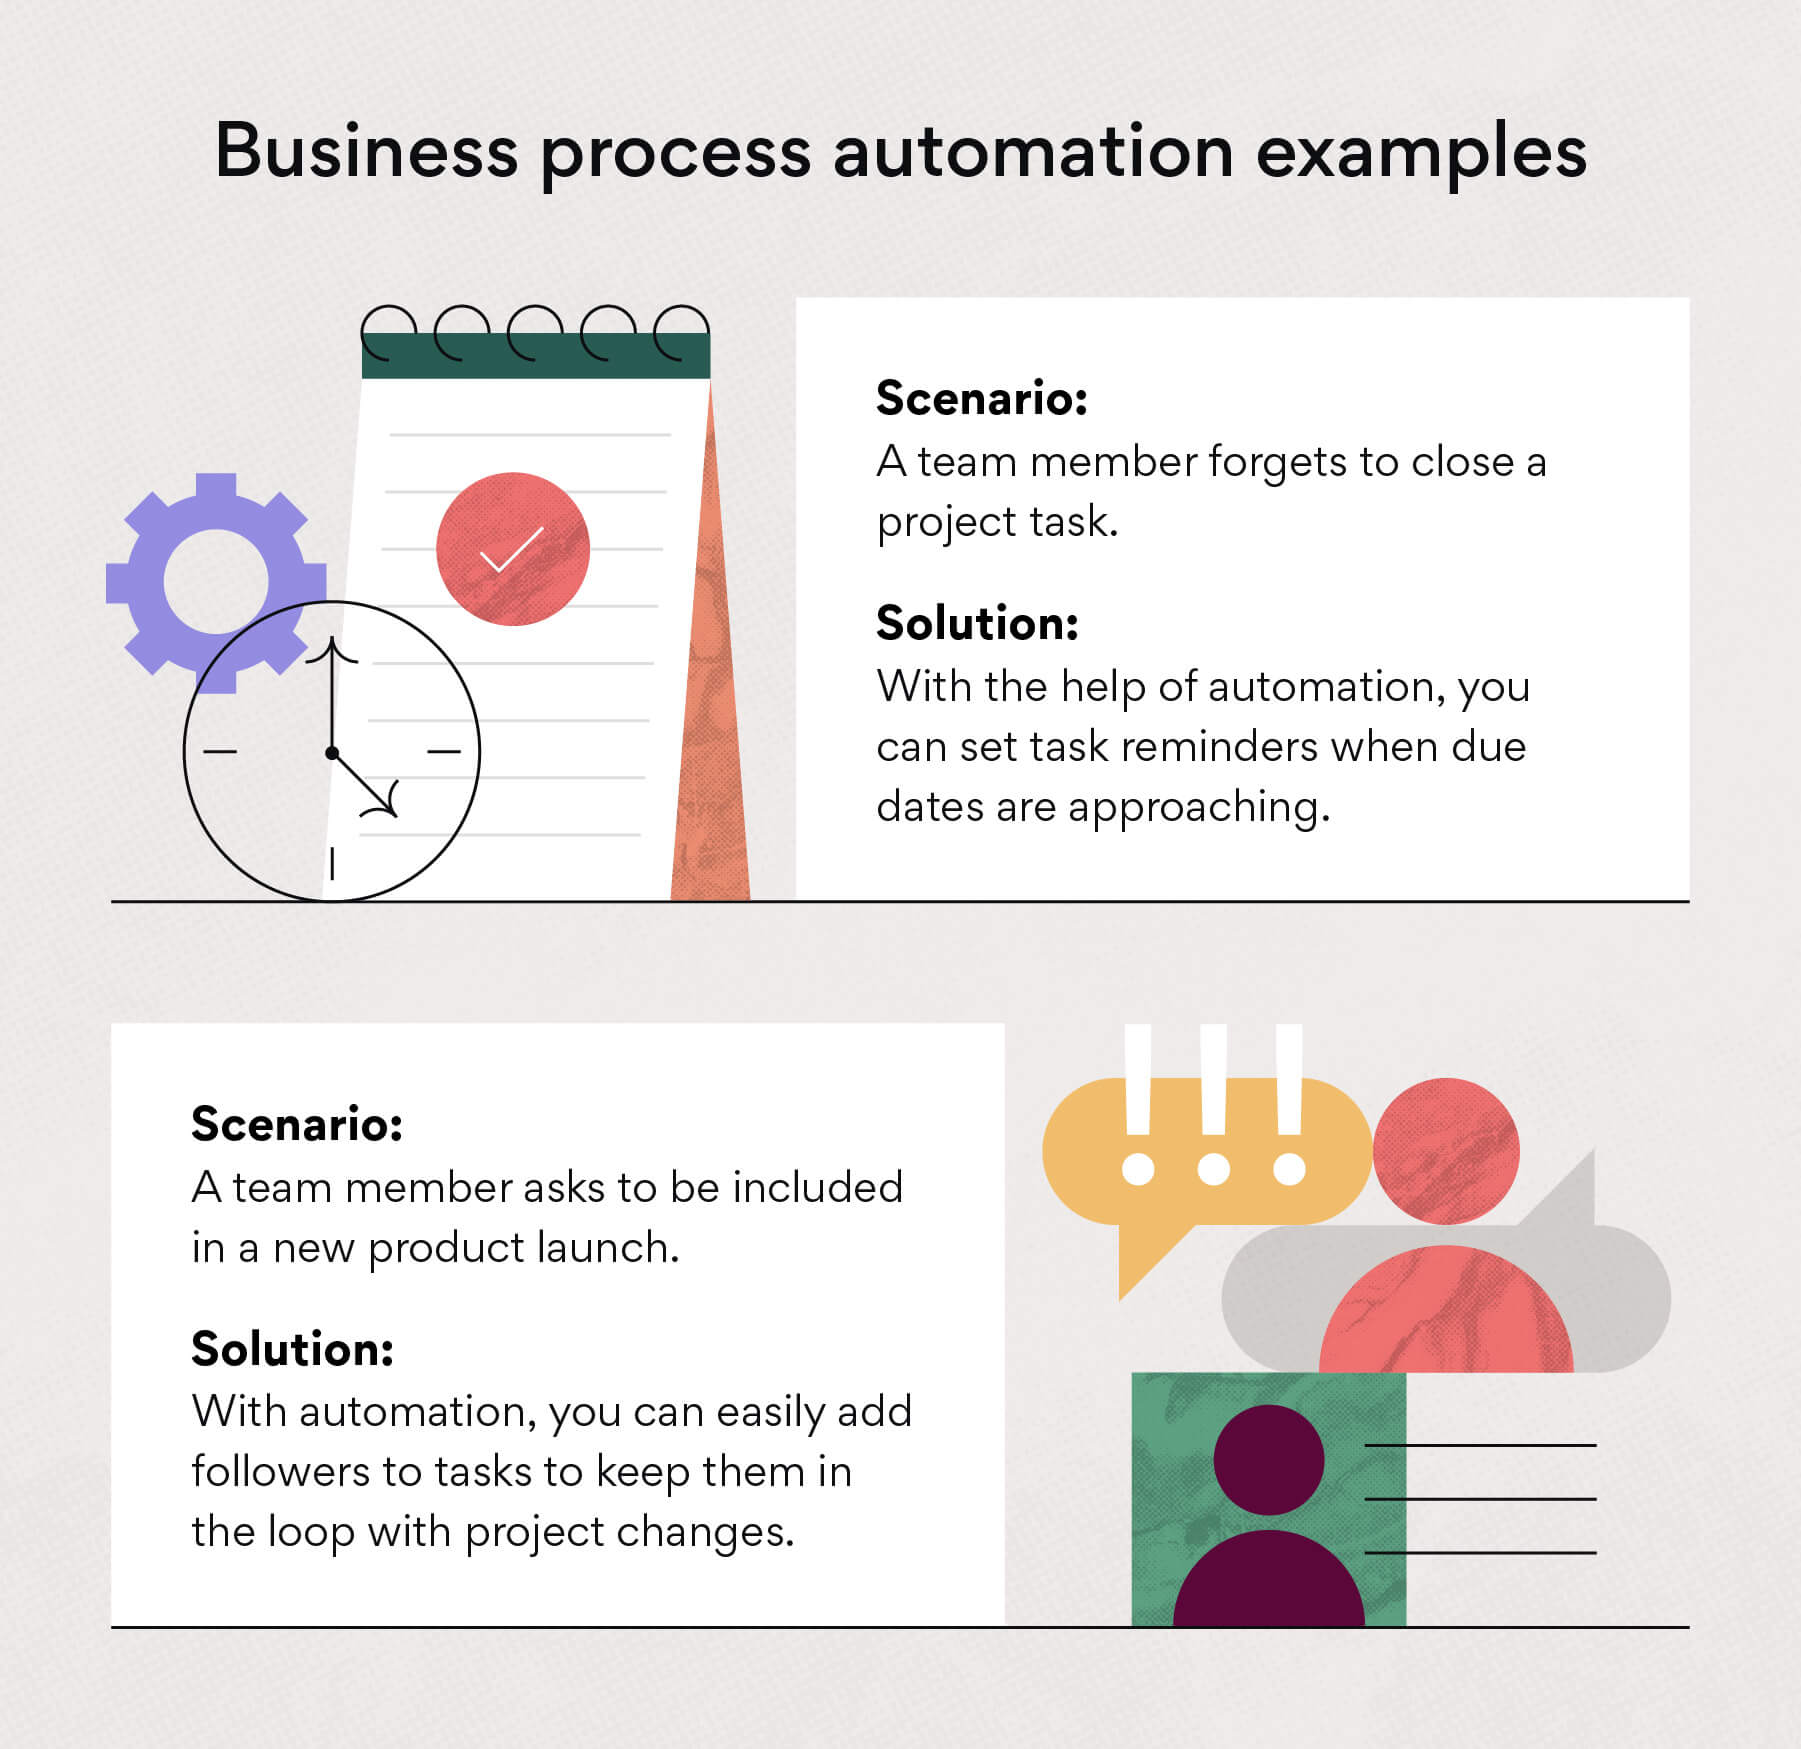 Business process automation examples